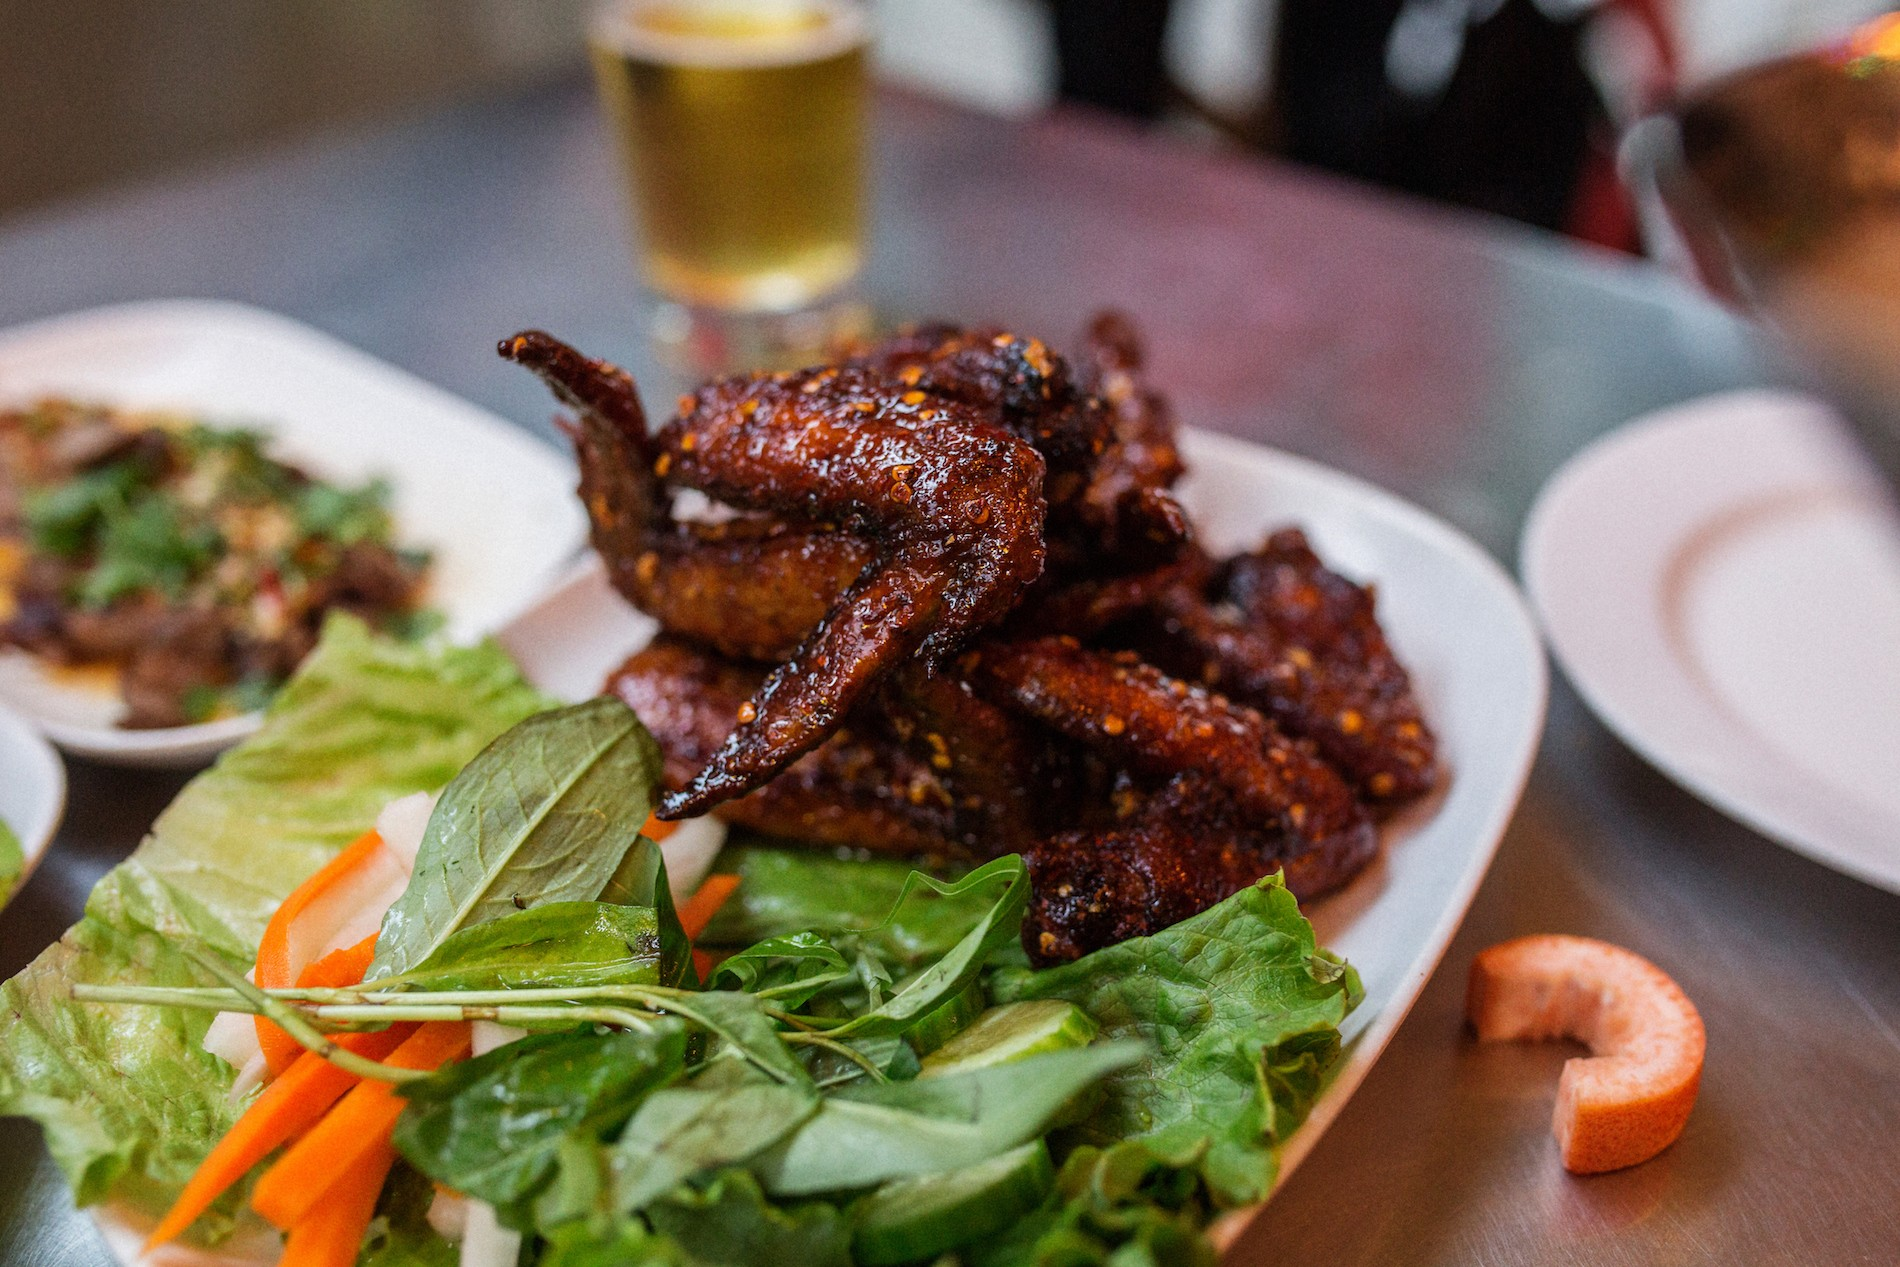 Ikeís Vietnamese Fish Sauce Wings Half dozen fresh whole natural chicken wings marinated in fish sauce and sugar, deep fried, tossed in caramelized Phu Quoc fish sauce and garlic and served with Vietnamese table salad Pok Pok PDX Mushrooms in Portland, Oregon. August 2016. Matt Lutton / Boreal Collective for Vice Munchies